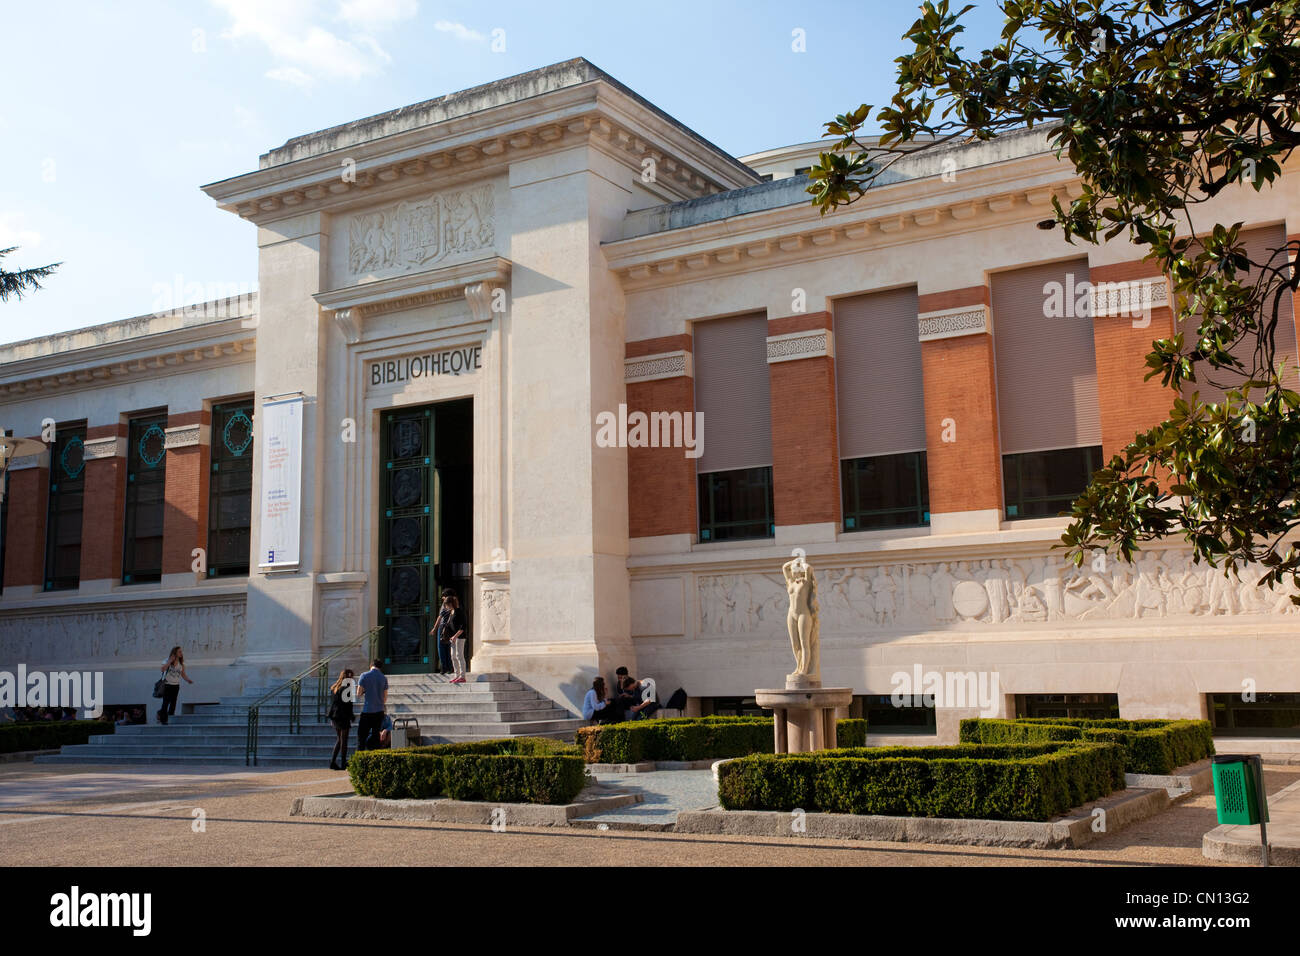 Municipal Library, Bibliotheque Municipale, Rue du Perigord, Toulouse, Midi-Pyrenees, France - Stock Image